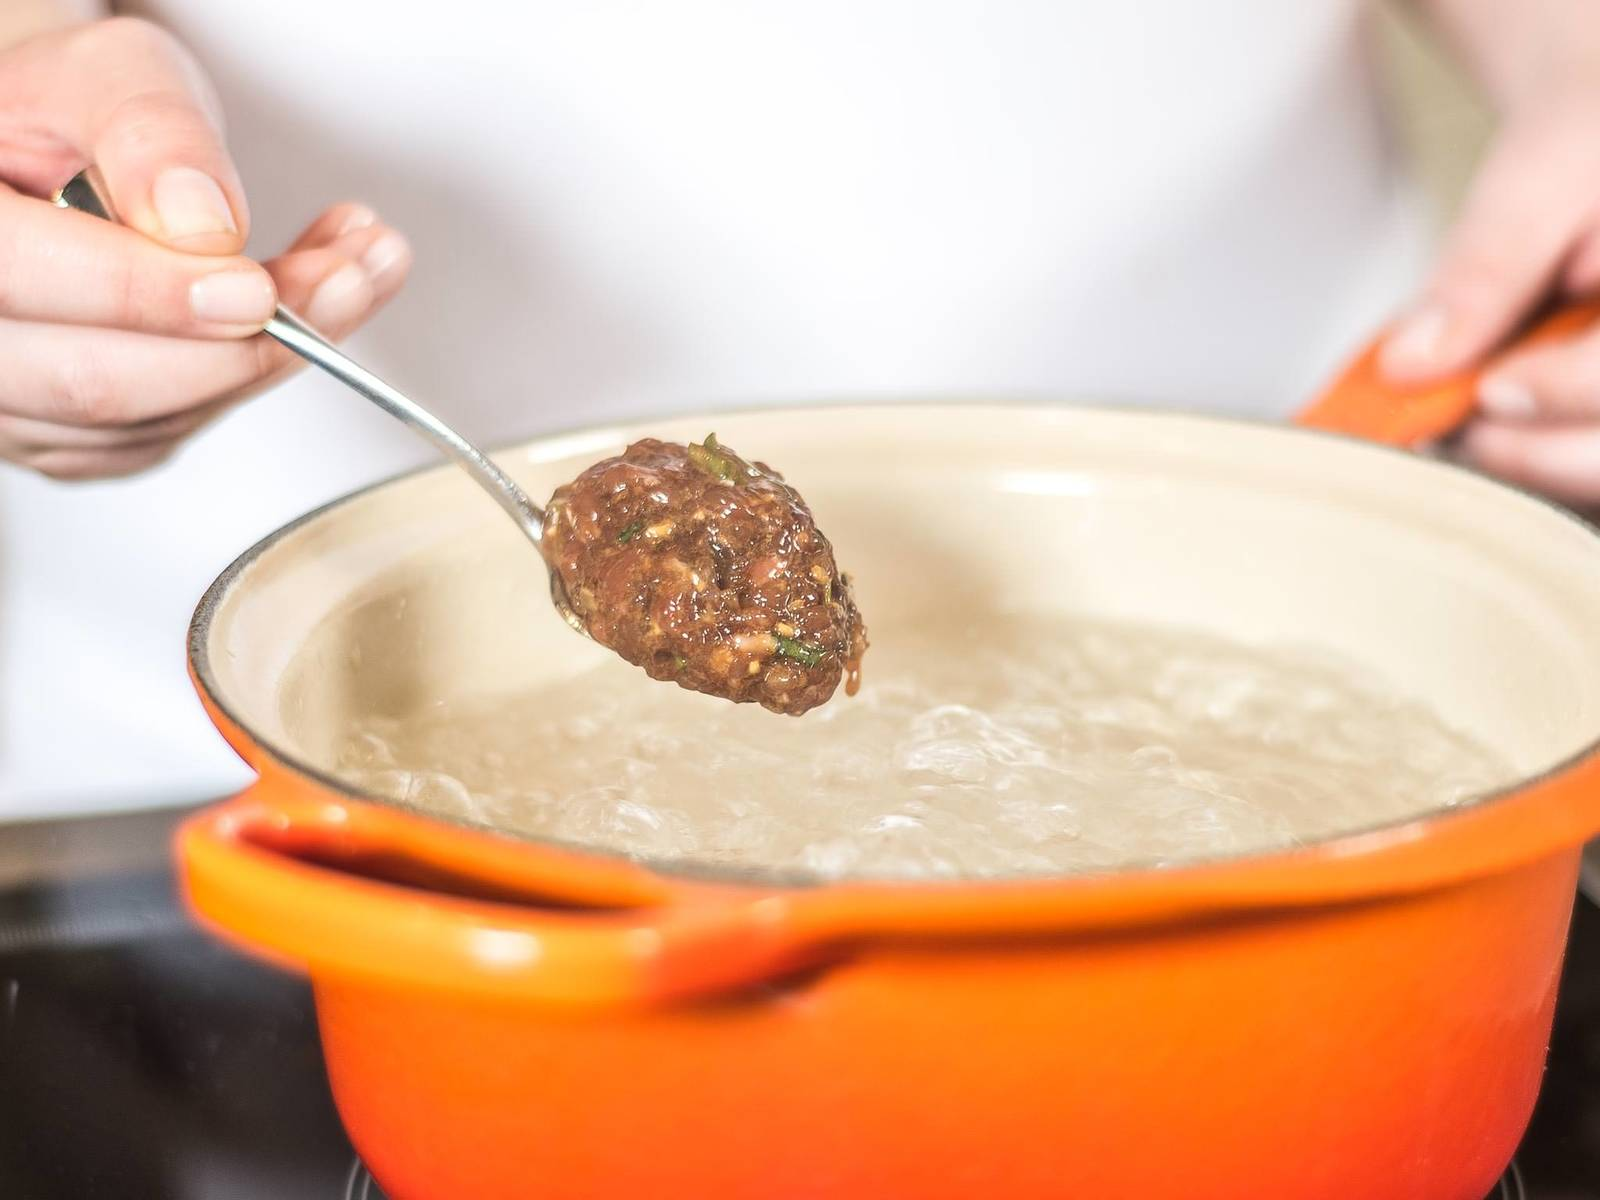 Now, put the meat balls into the boiling water using a spoon.